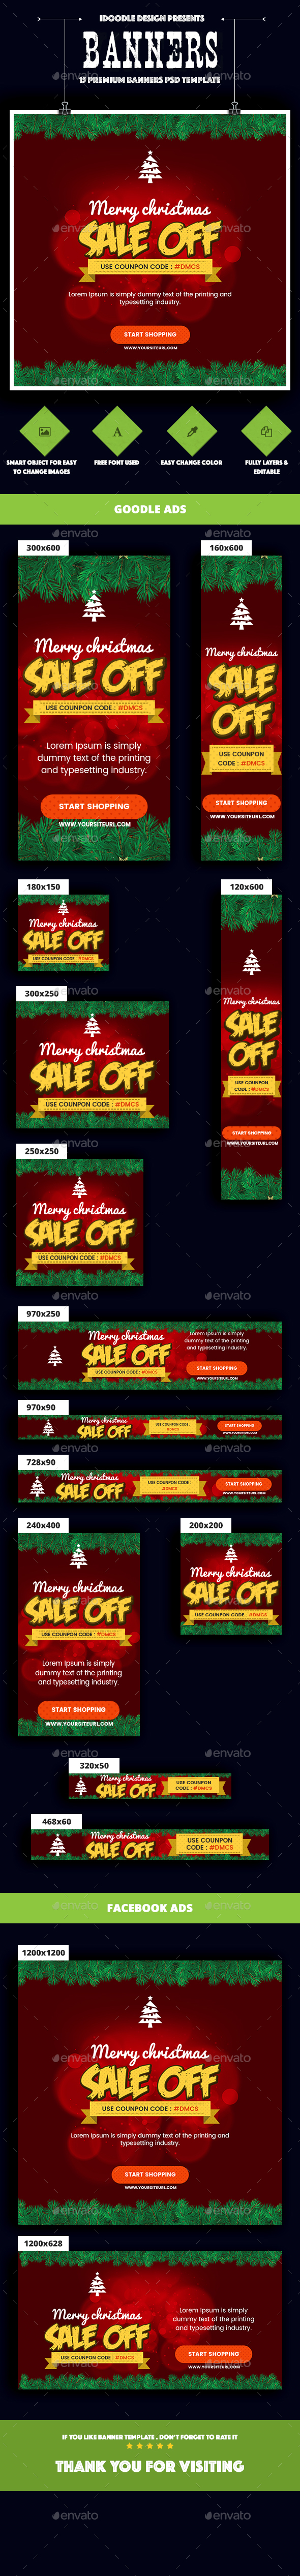 Merry Christmas Banners Ad - Banners & Ads Web Elements